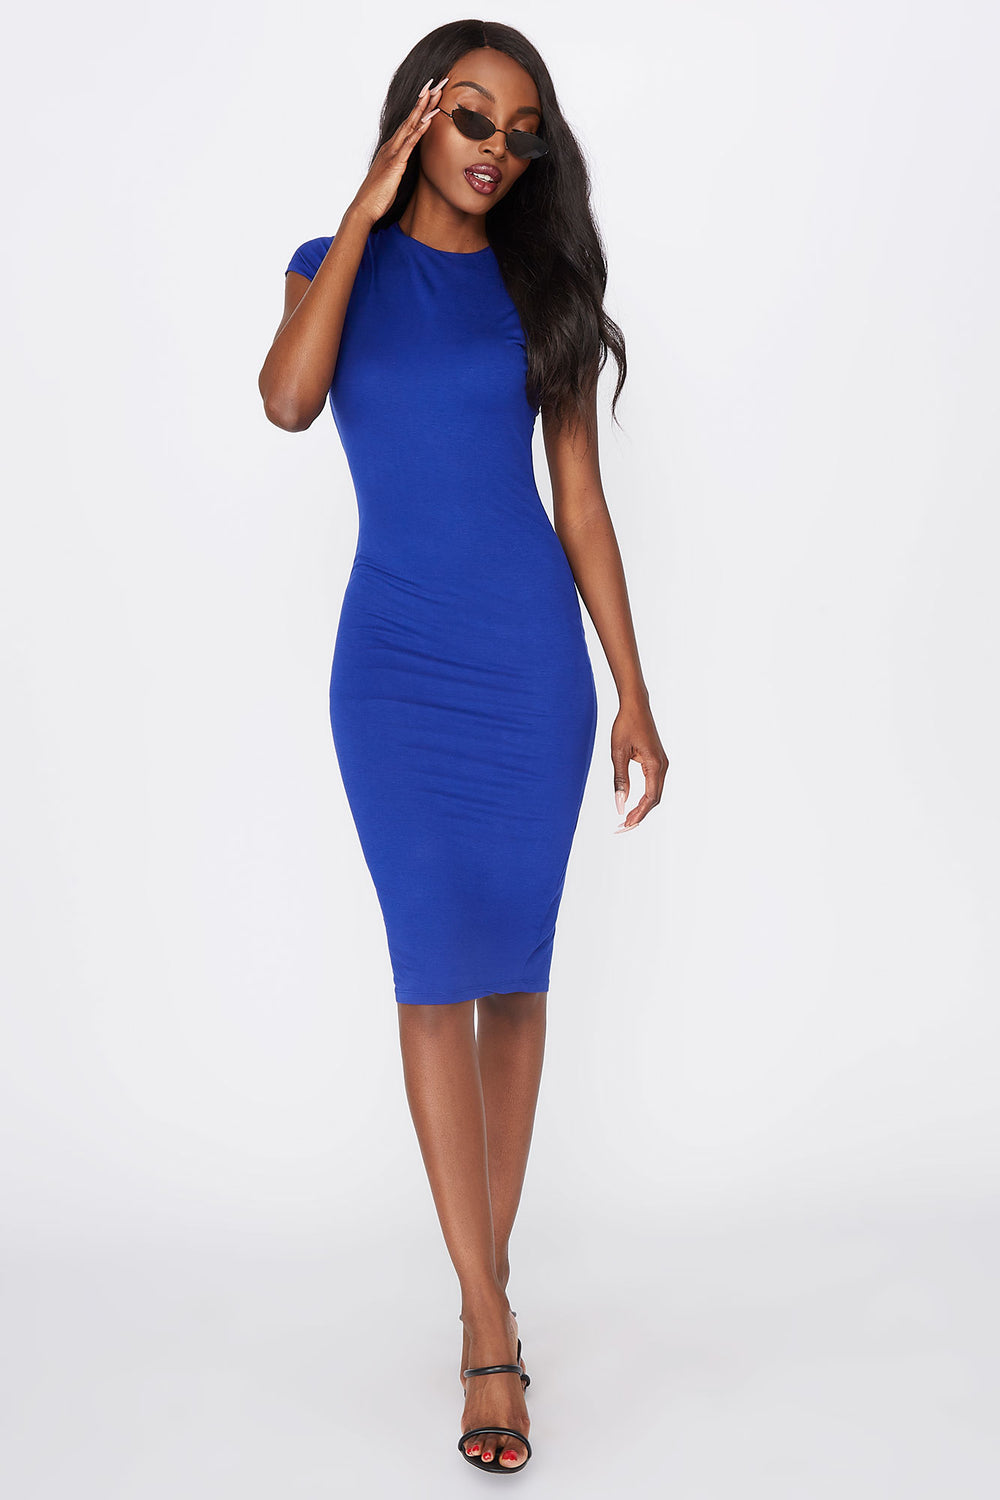 Crew Neck Short Sleeve Midi Dress Royal Blue